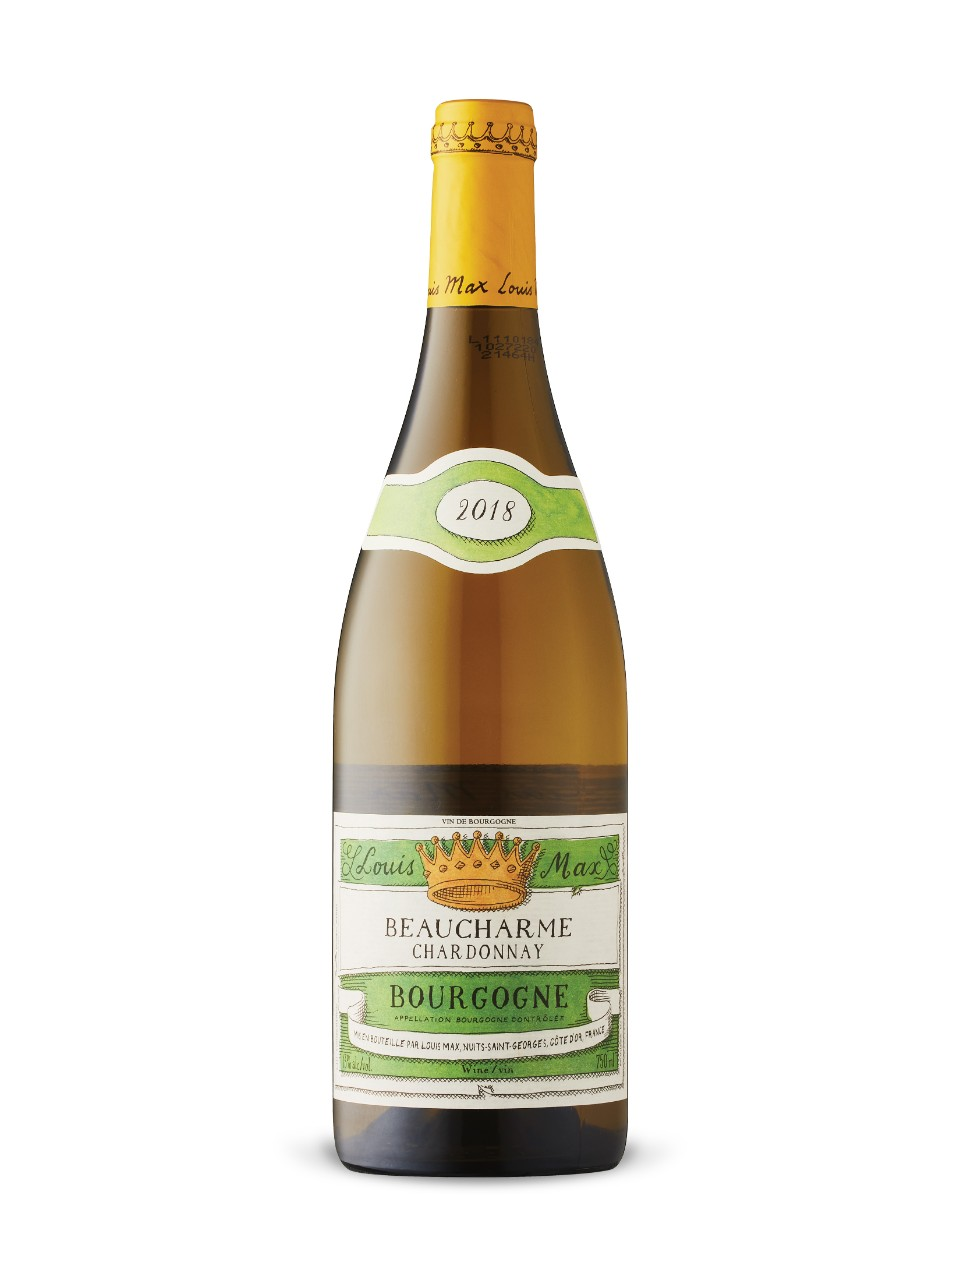 Louis Max Beaucharme Bourgogne Chardonnay 2018 from LCBO